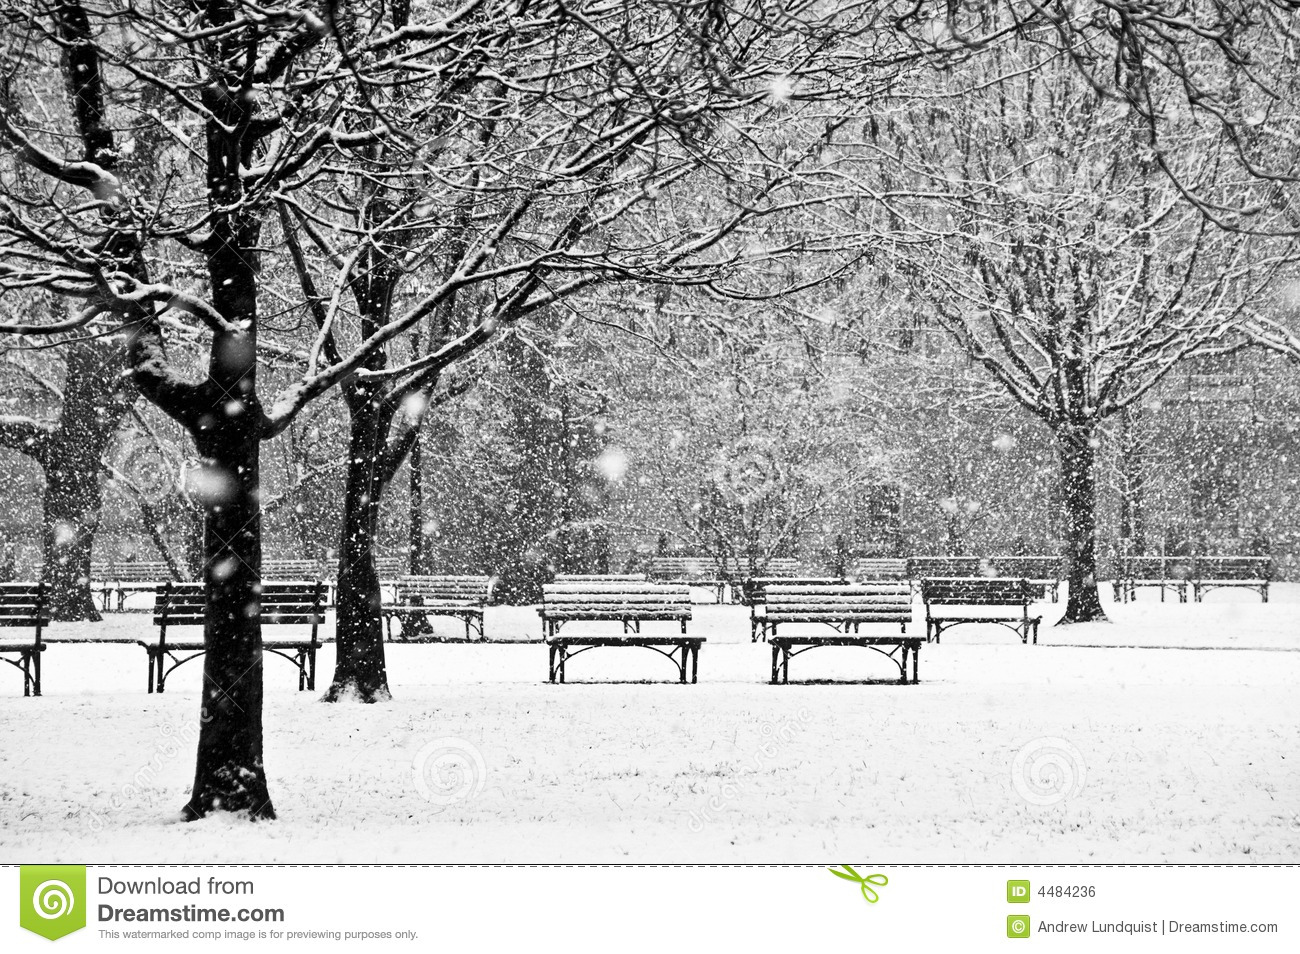 Beautiful, peaceful scene of a park during a winter